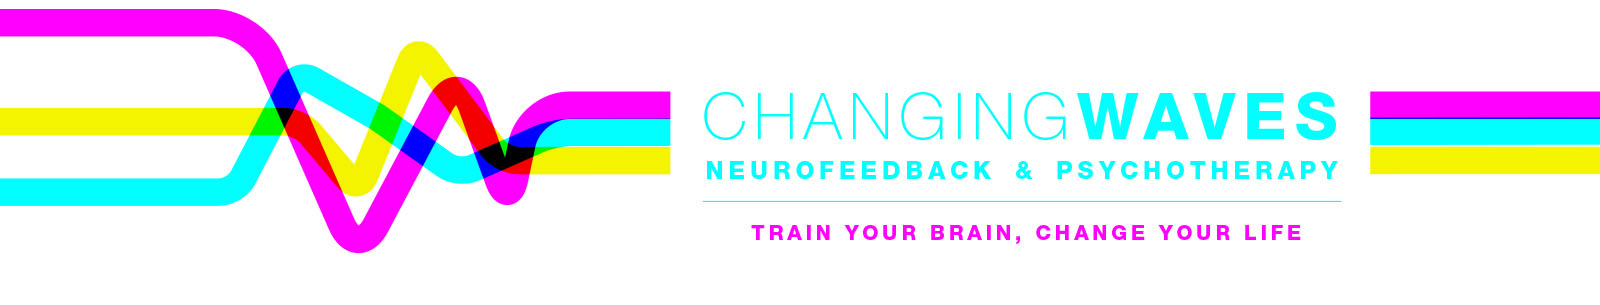 "site banner that reads ""changing waves neurofeedback and psychotherapy. Train your brain, change your life"""